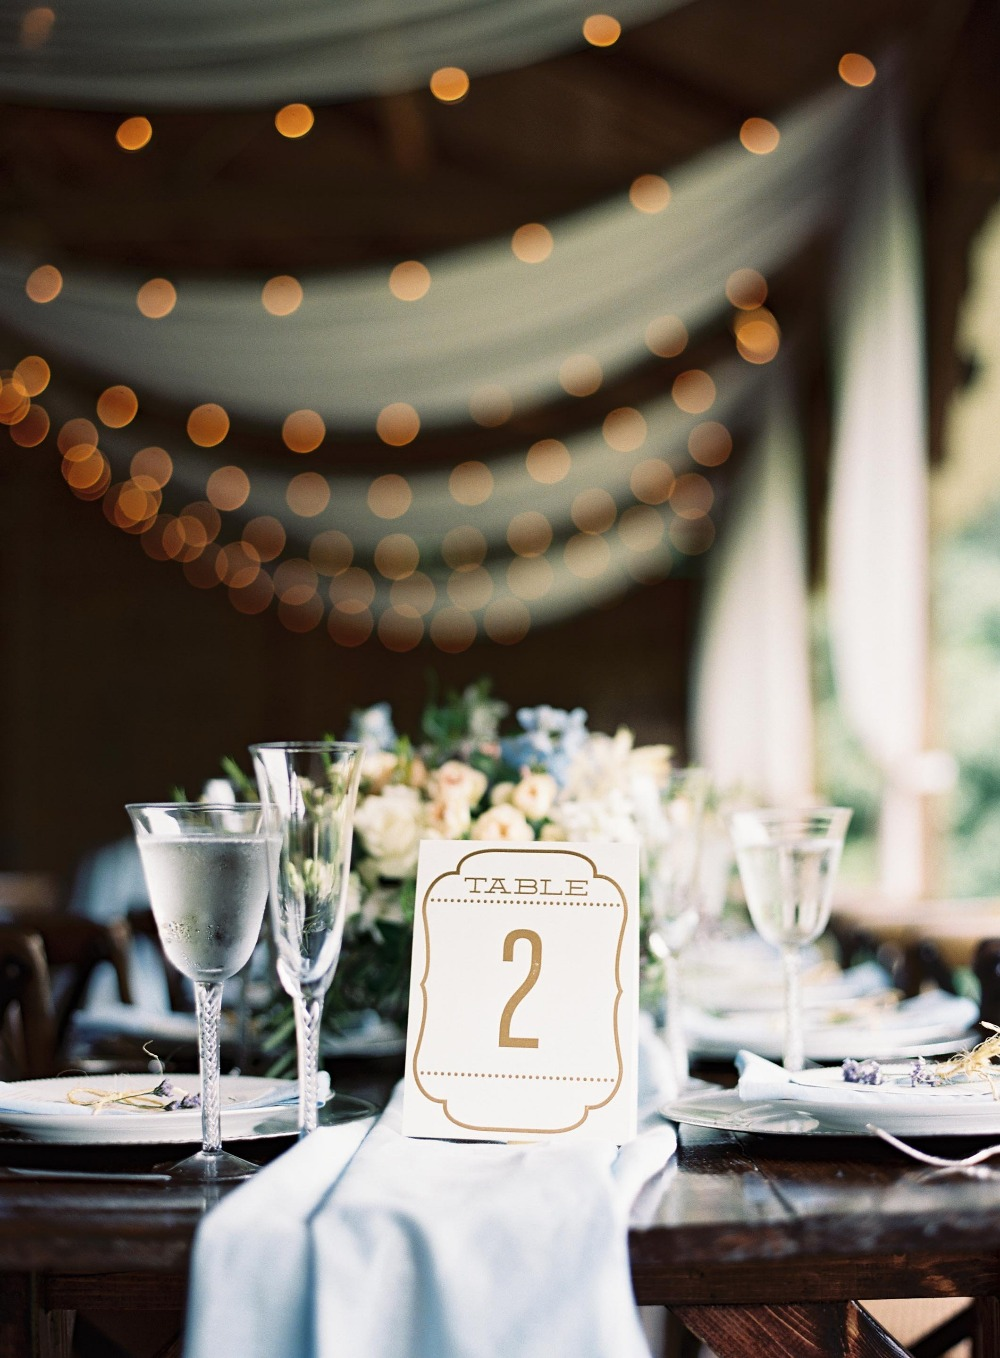 Vintage table number